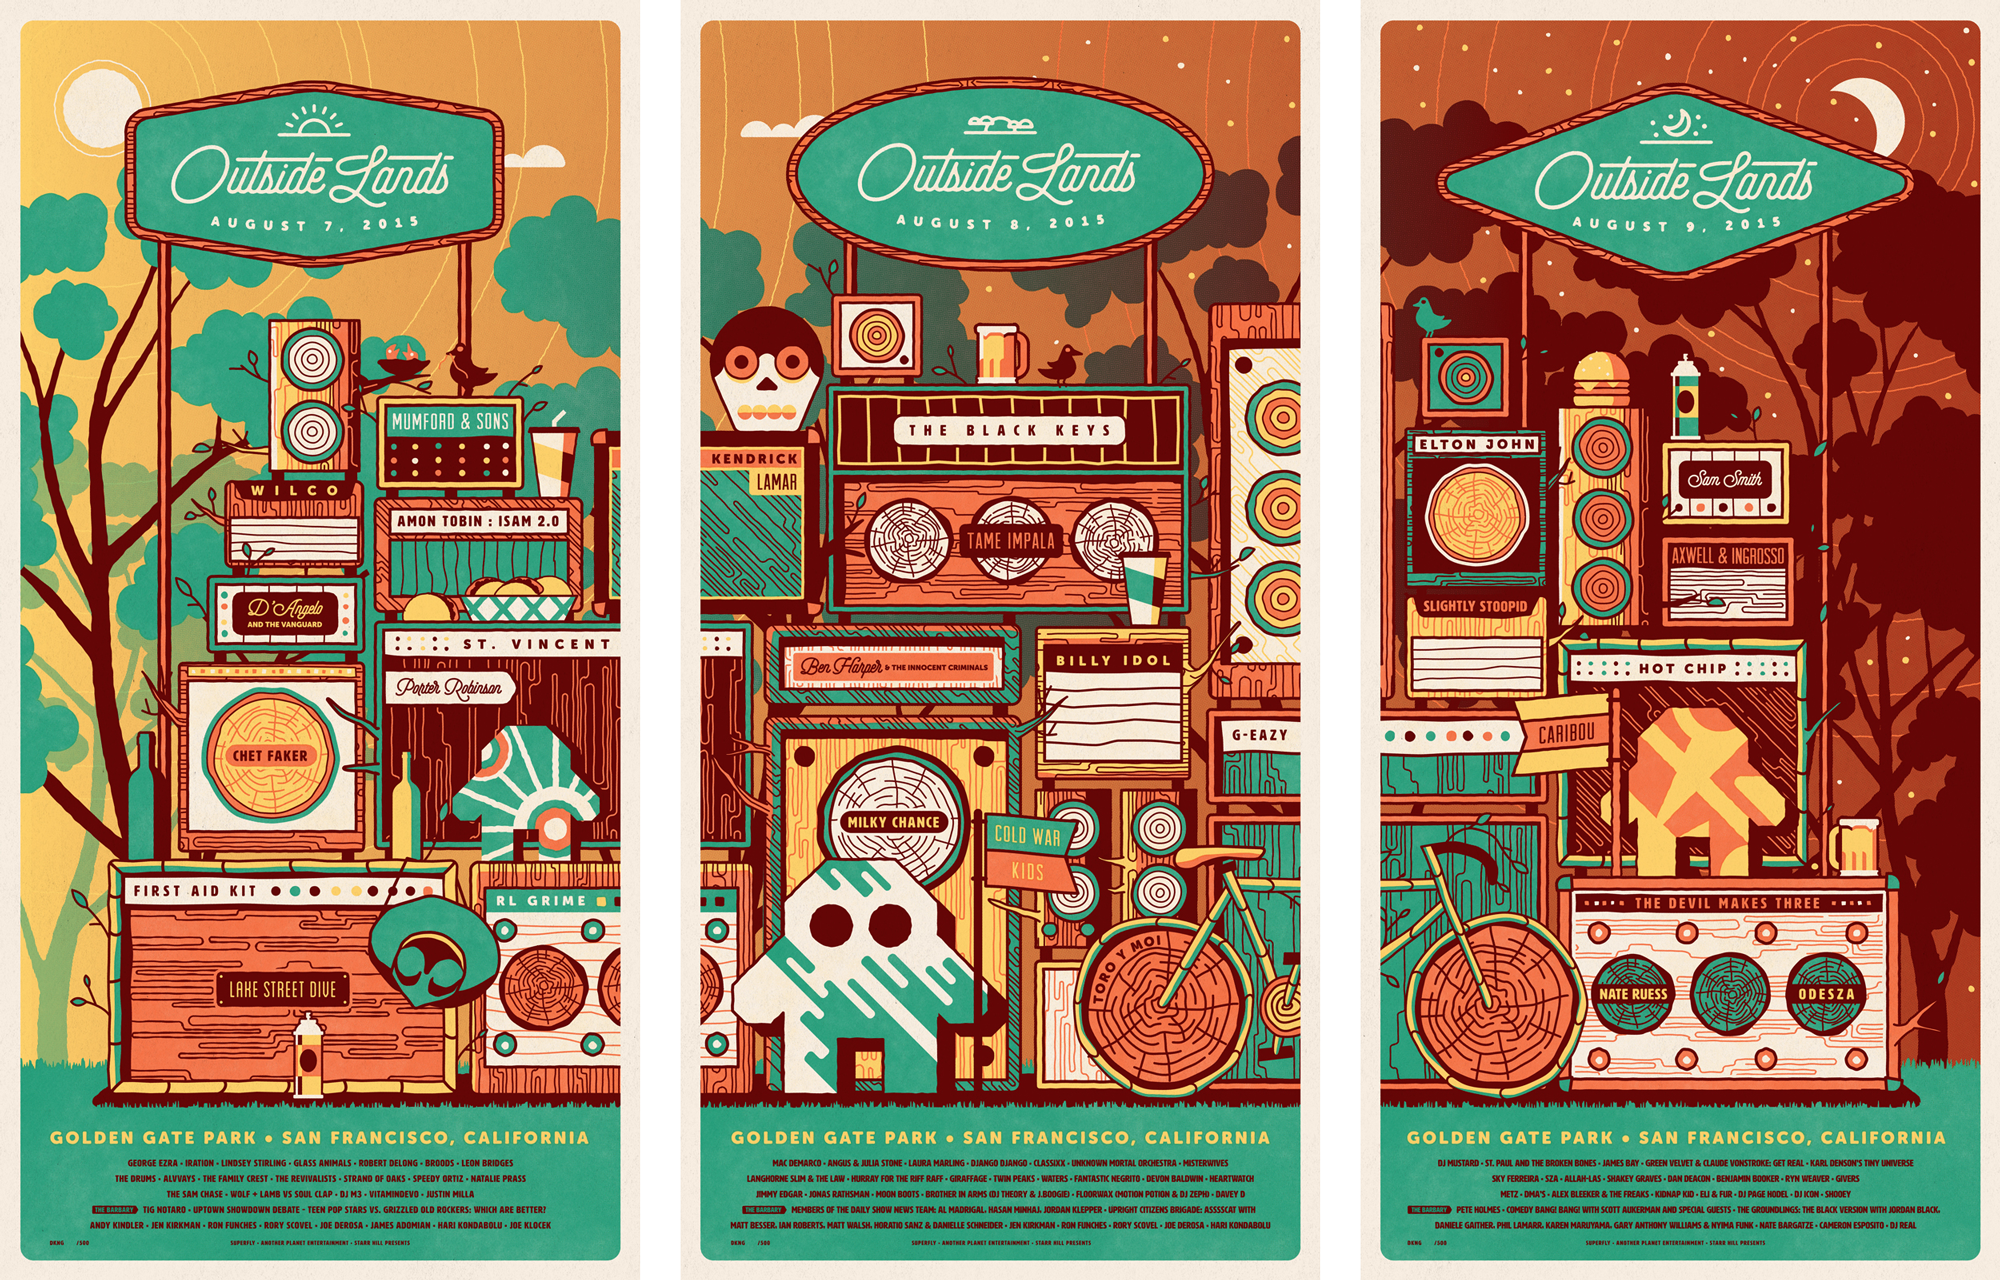 Outside Lands branding by DKNG